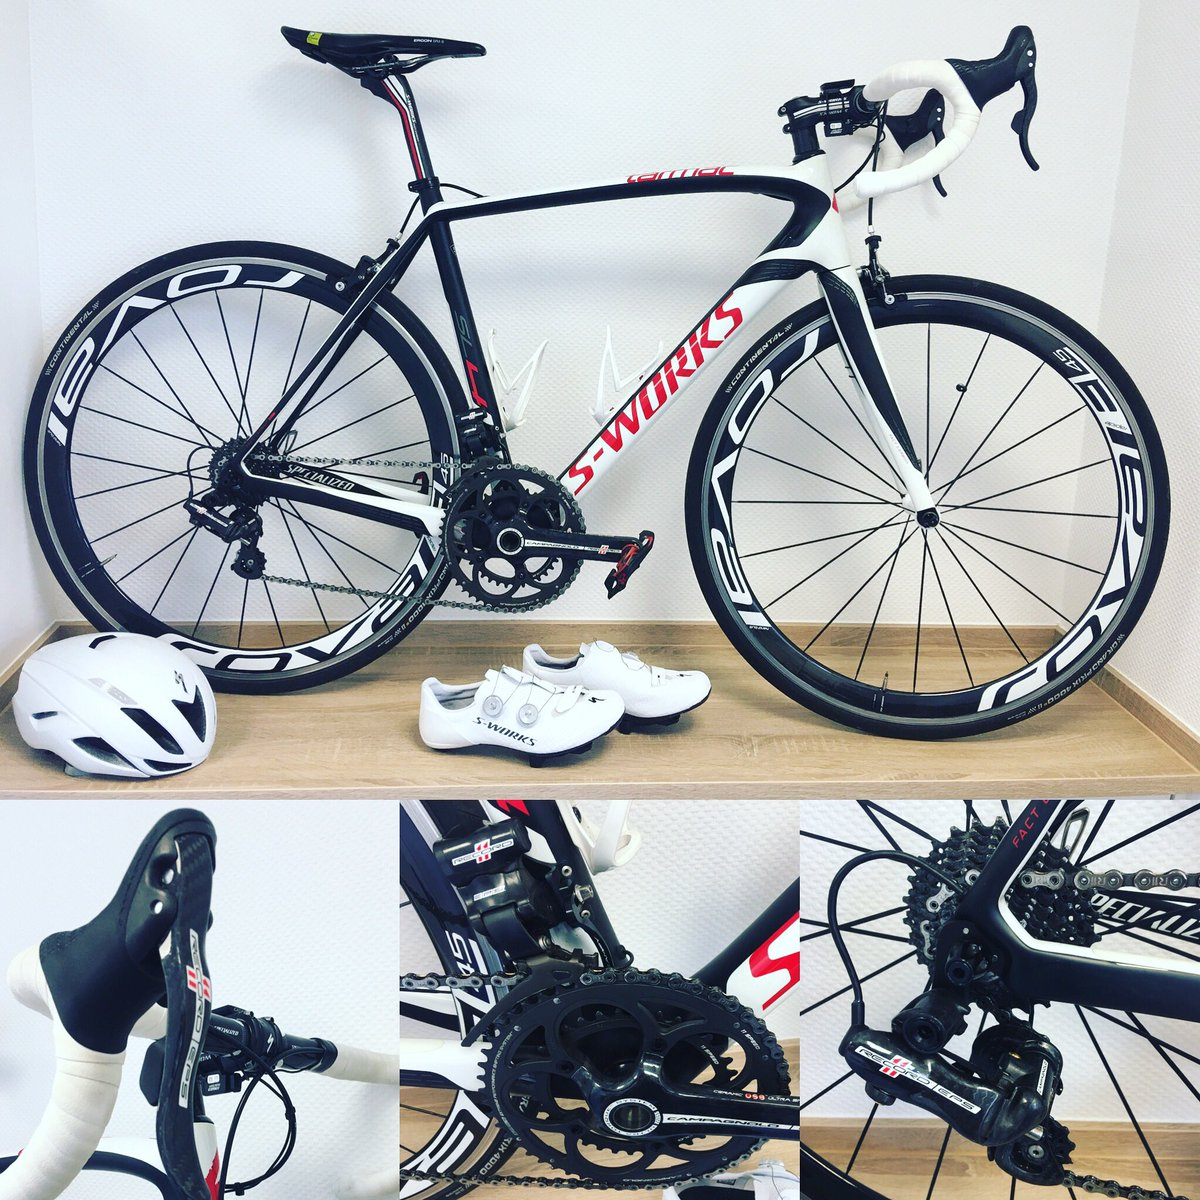 Winter sleep for my S-Works! Winter season means cyclocross time! Who is an all season cyclist like me? #specialized #sworks #sworkstarmac #specializedtarmac #tarmac #campagnolo #record #roval #iamspecialized #specializedbikes #roadbike #ergon @iamspecialized @campagnolosrlpic.twitter.com/eIZMaa9MXJ